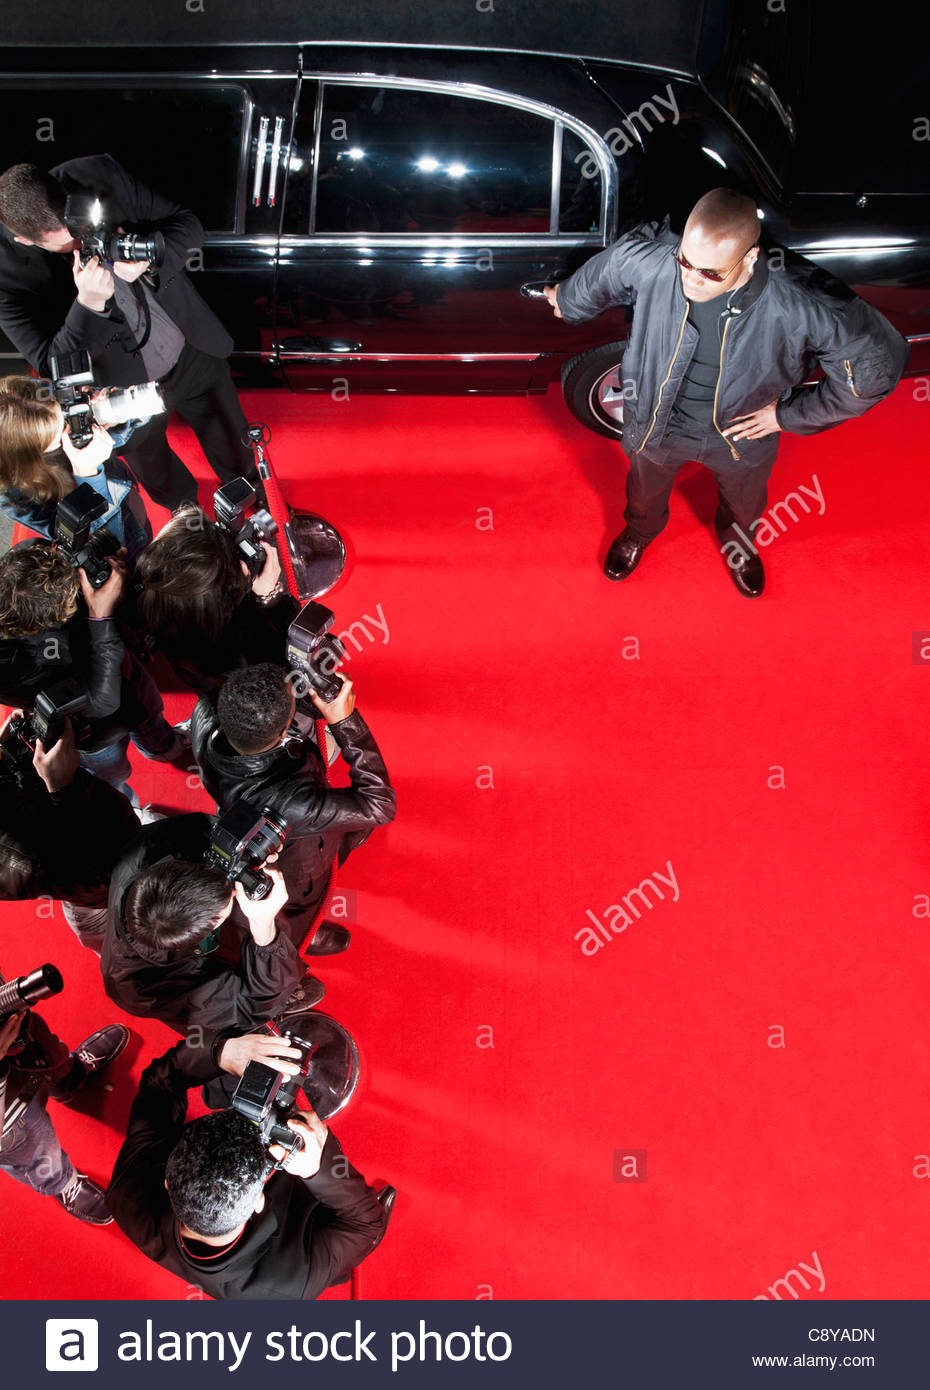 Bodyguard protecting limo from paparazzi - Stock Image